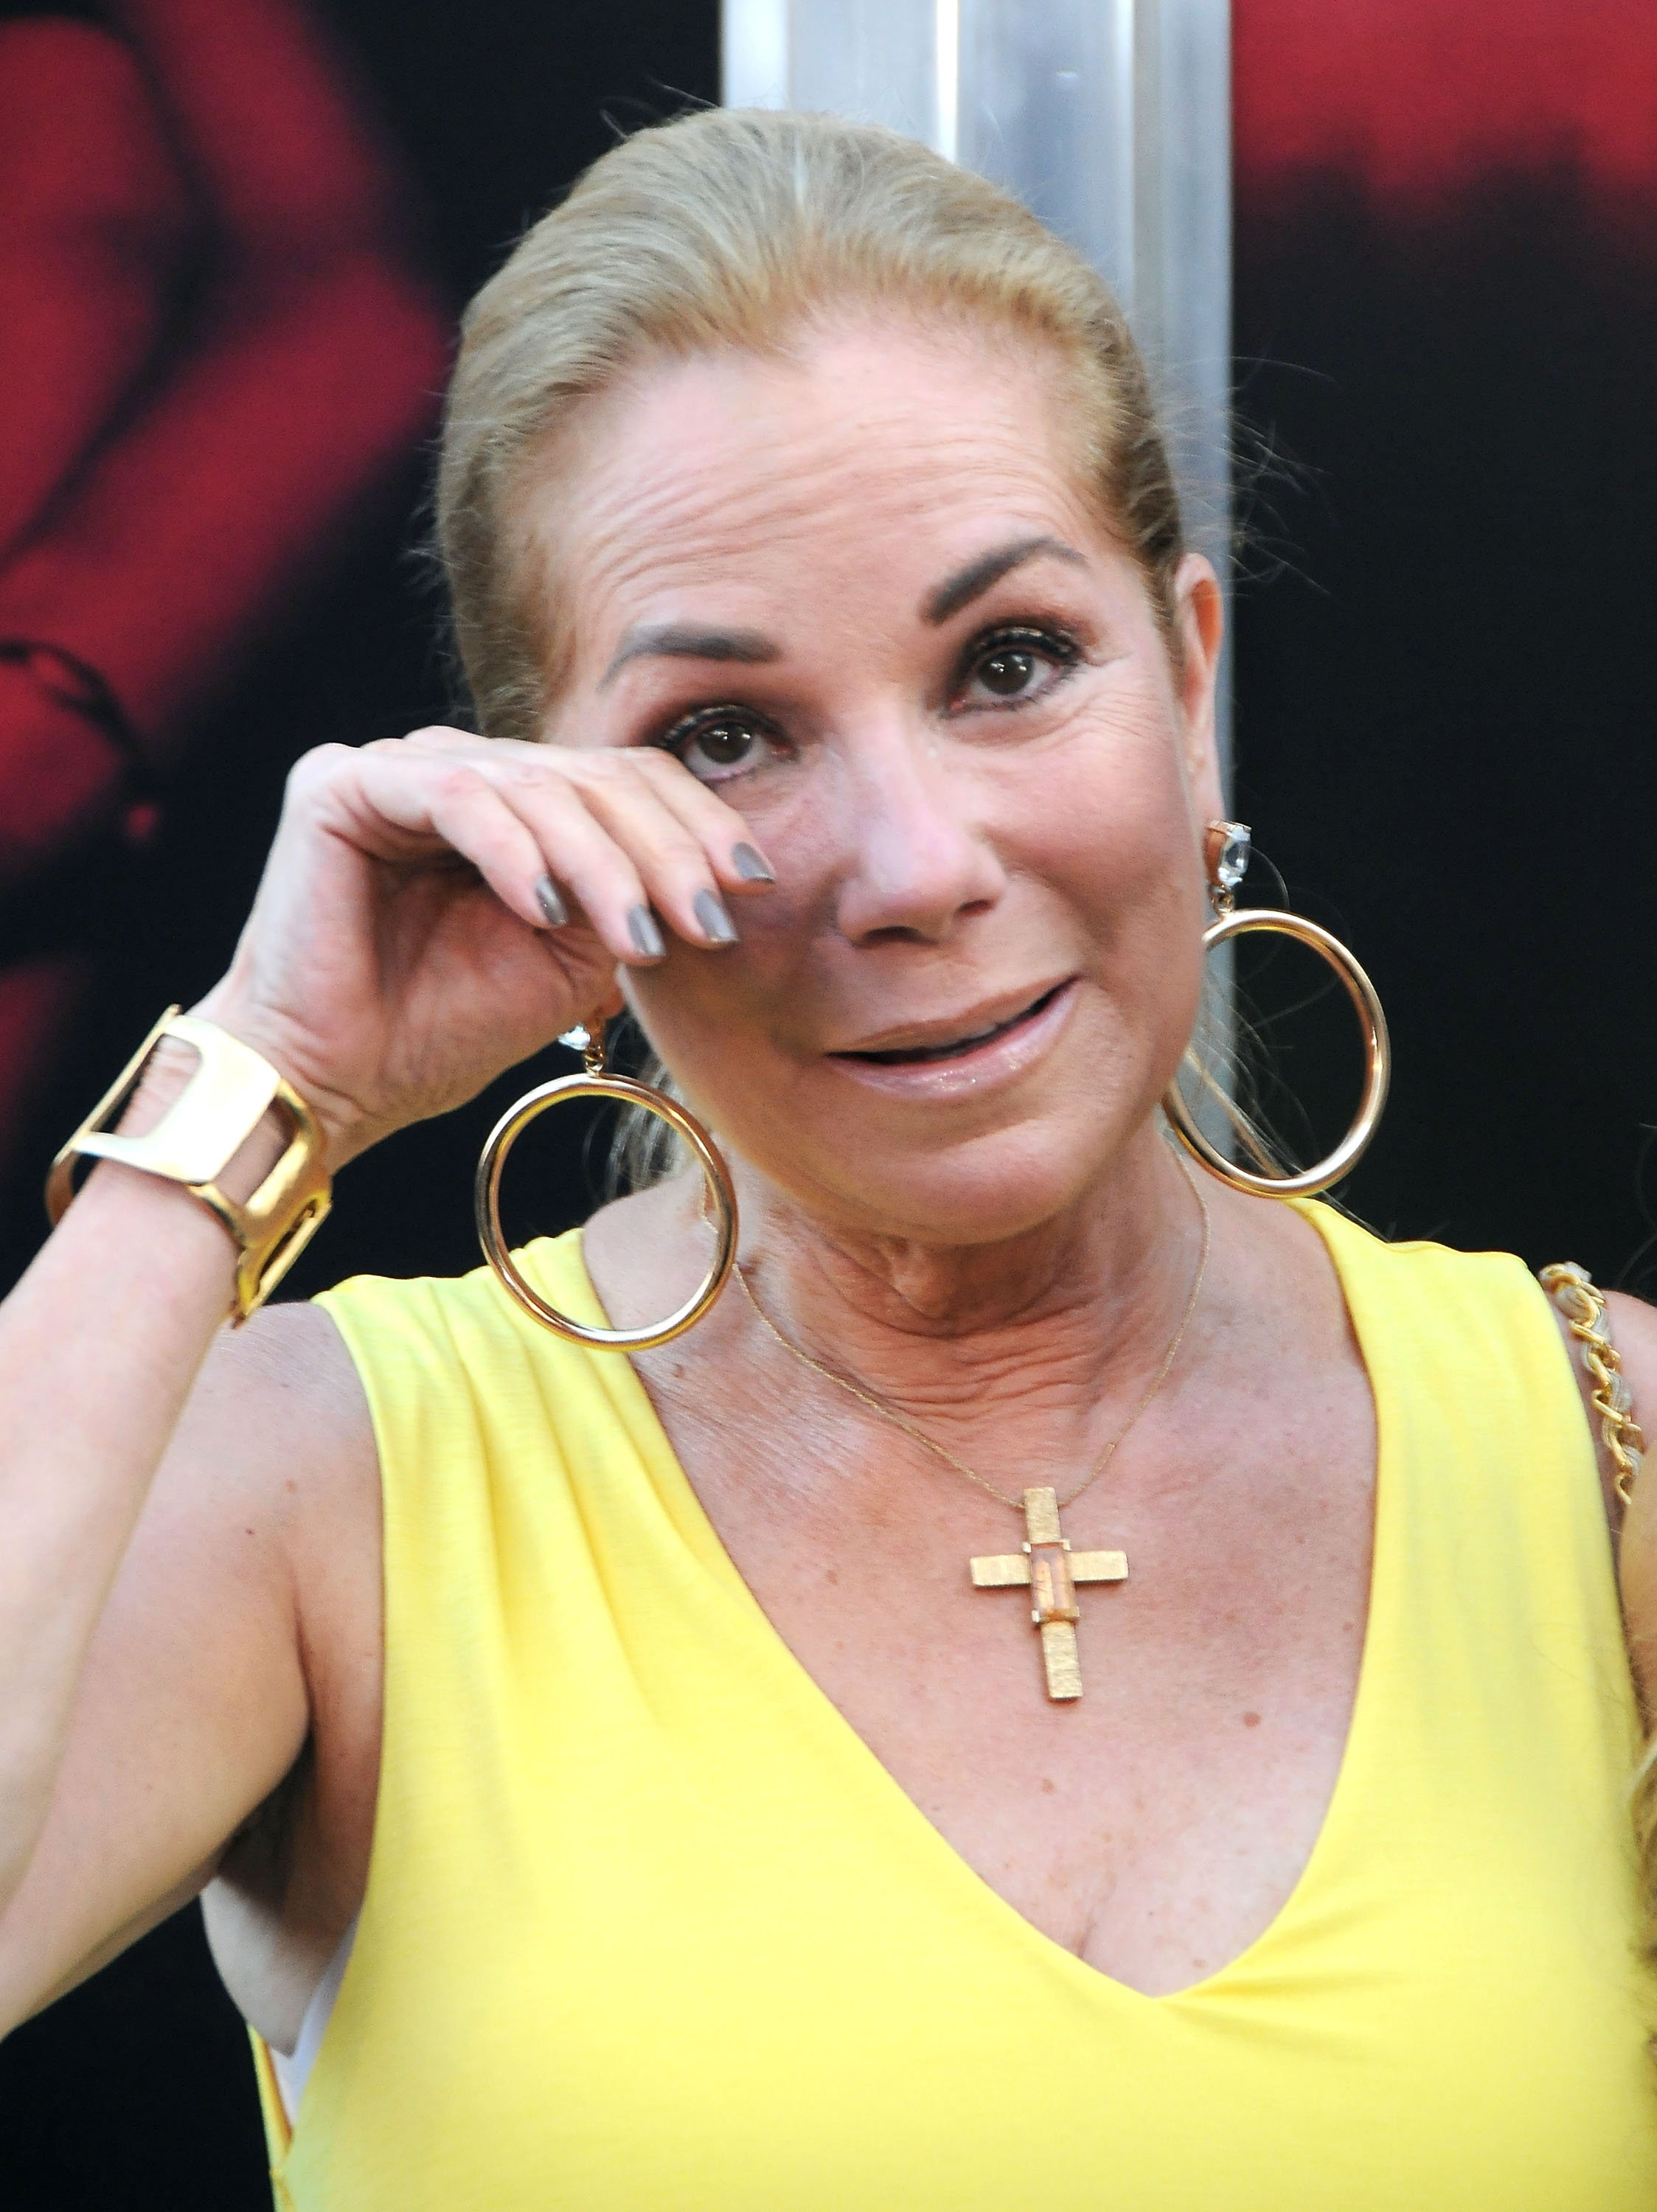 Image Credits: Getty Images / Barry King | TV personality Kathie Lee Gifford attends the Premiere Of New Line Cinema's 'The Gallows' at Hollywood High School on July 7, 2015 in Los Angeles, California.